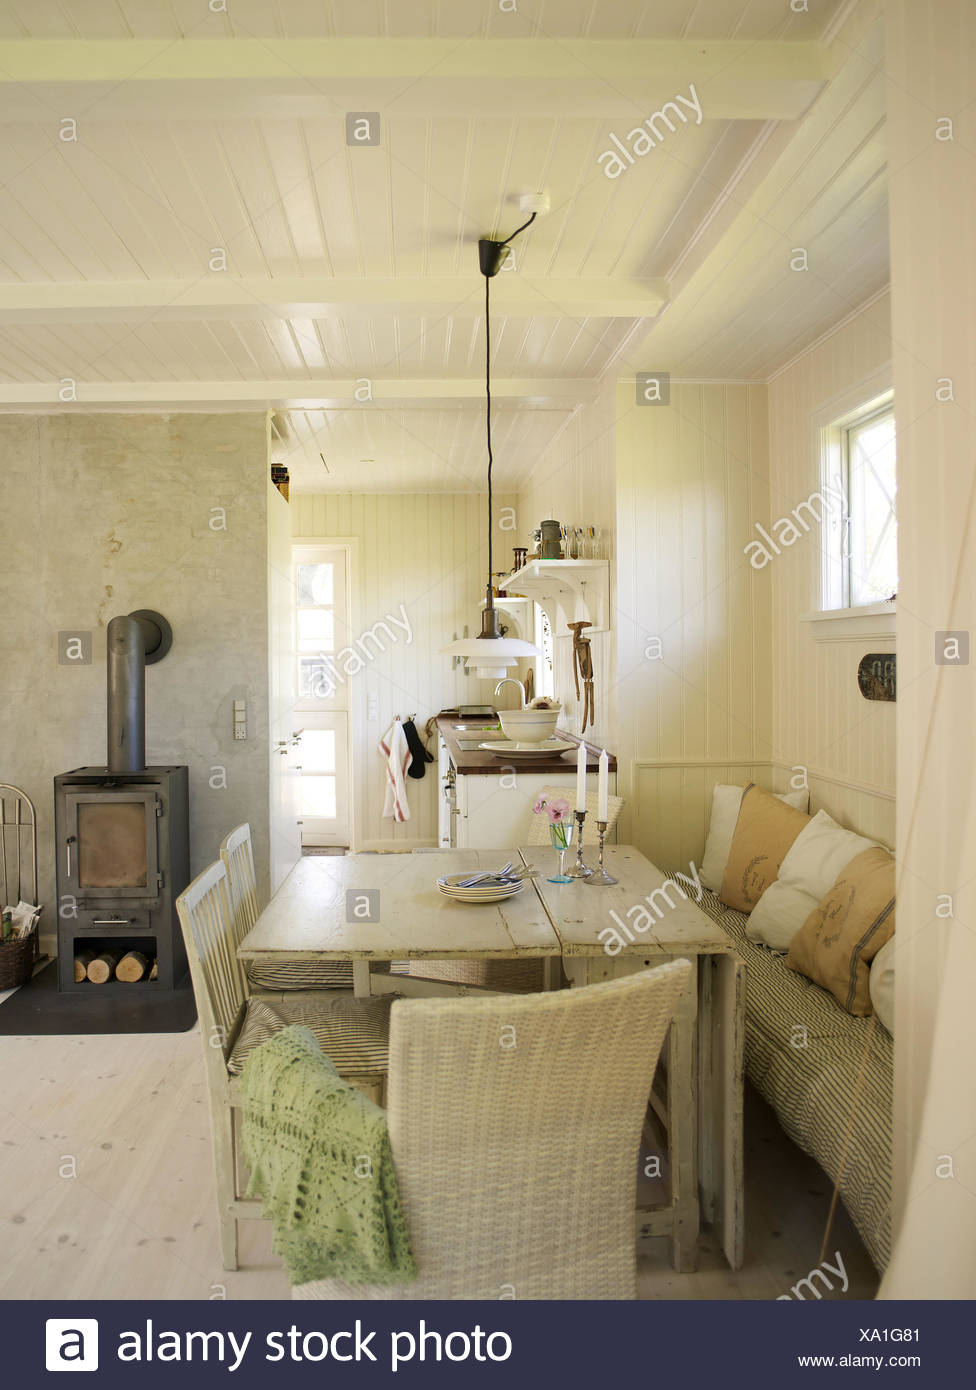 Lambris Blanc Salon Wood Panelled Room Photos Wood Panelled Room Images Alamy